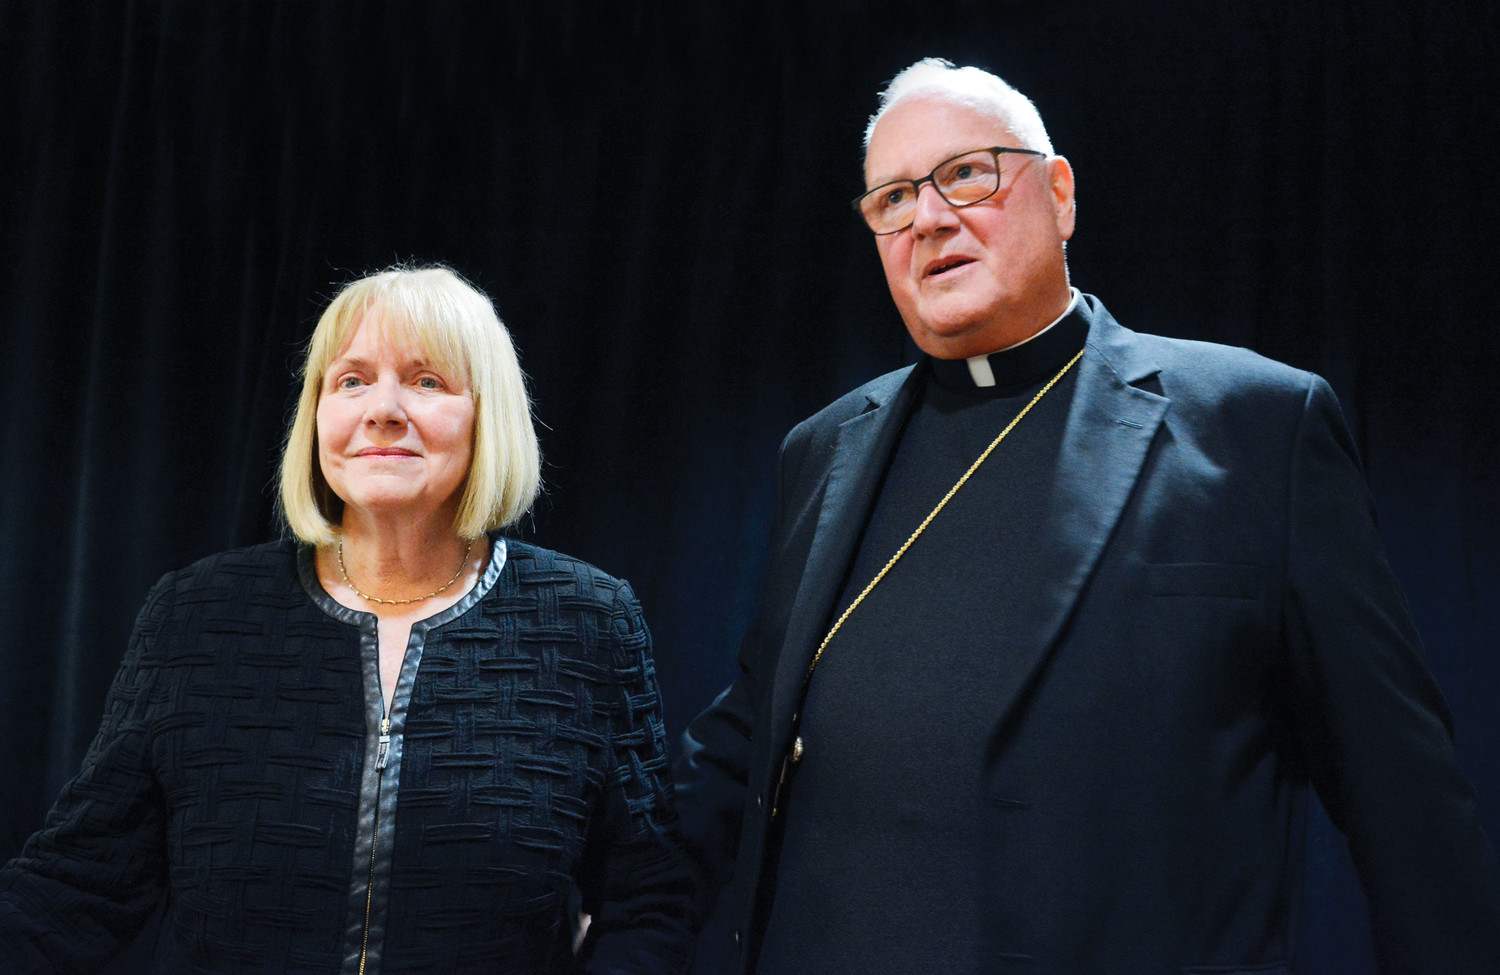 ACCOUNTABILITY—Barbara Jones, a former federal judge, and Cardinal Dolan address the media Sept. 20 at the New York Catholic Center in Manhattan. The cardinal called a press conference to announce the appointment of Ms. Jones as the archdiocese's special counsel and independent reviewer.